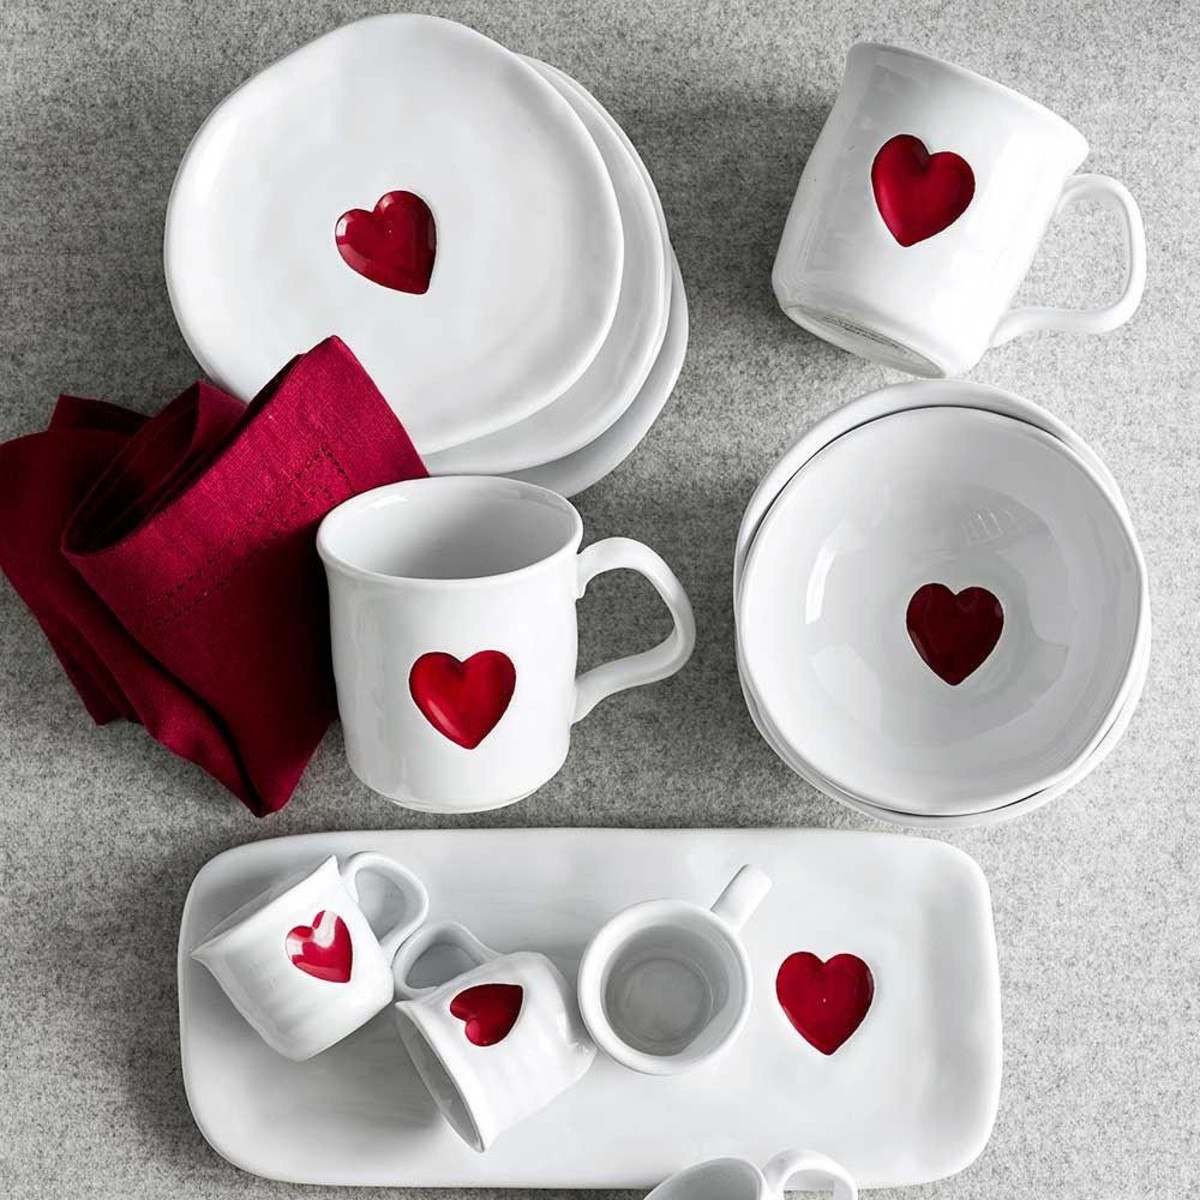 Valentine's Day Bowls by Williams-Sonoma , $12.